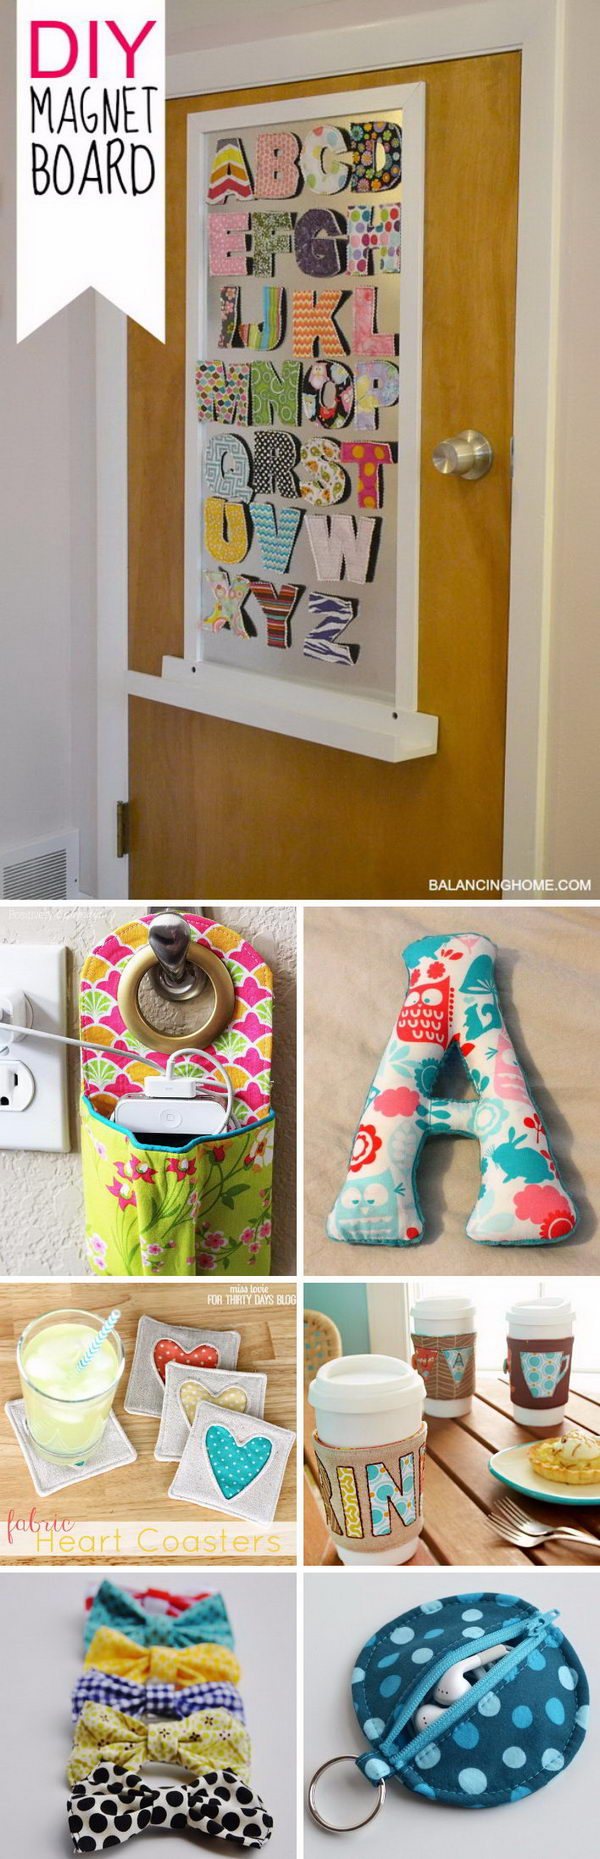 Easy and Adorable Sewing Projects for Beginners.